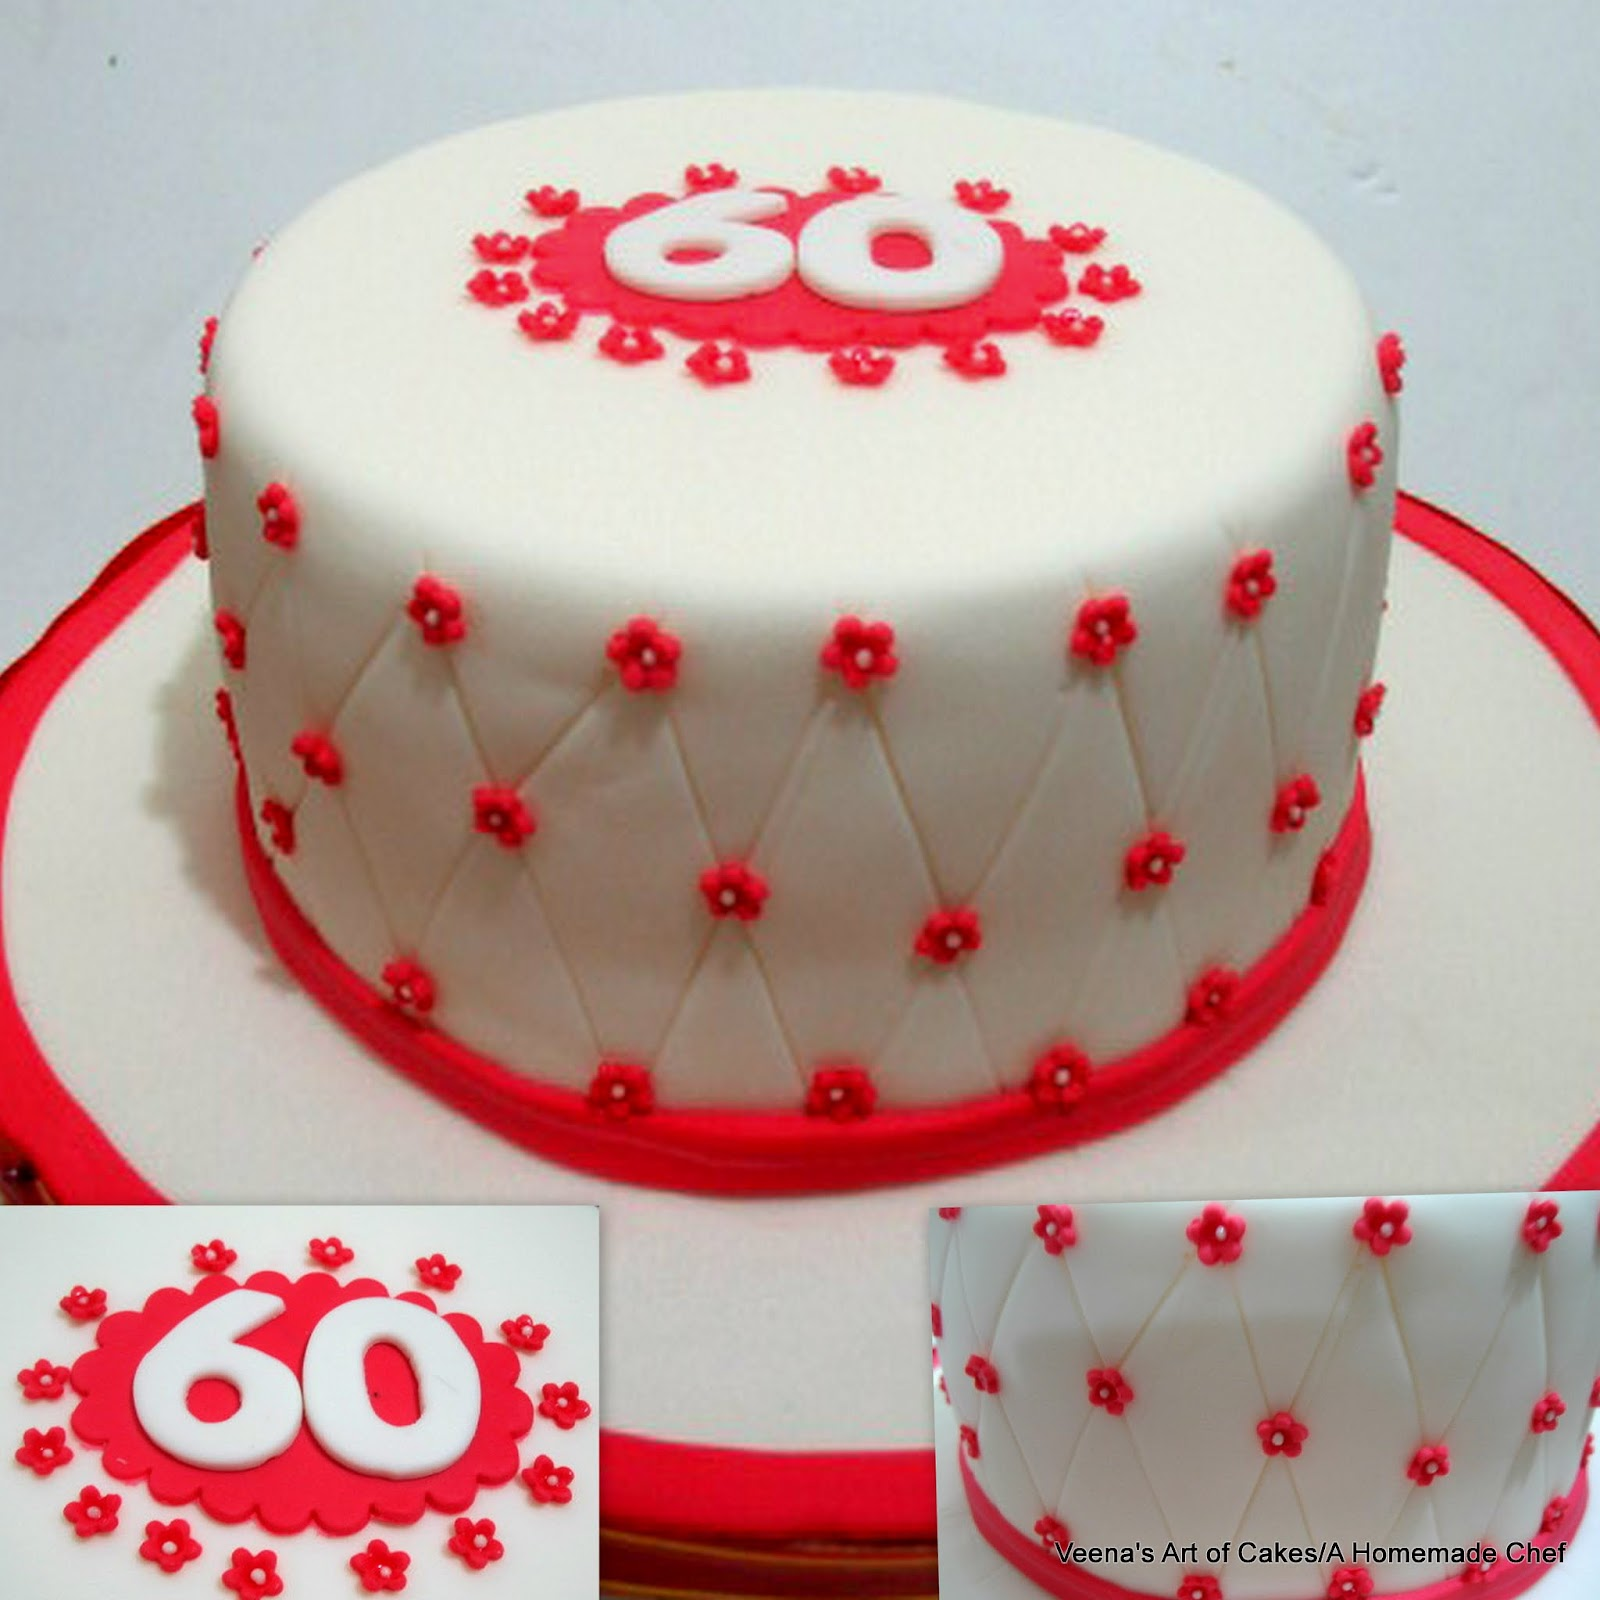 Heres A Polka Dot Birthday Cake For Mom Who Loves Red Orange And Dots Simple Yet Moist Chocolate With Buttercream Homemade